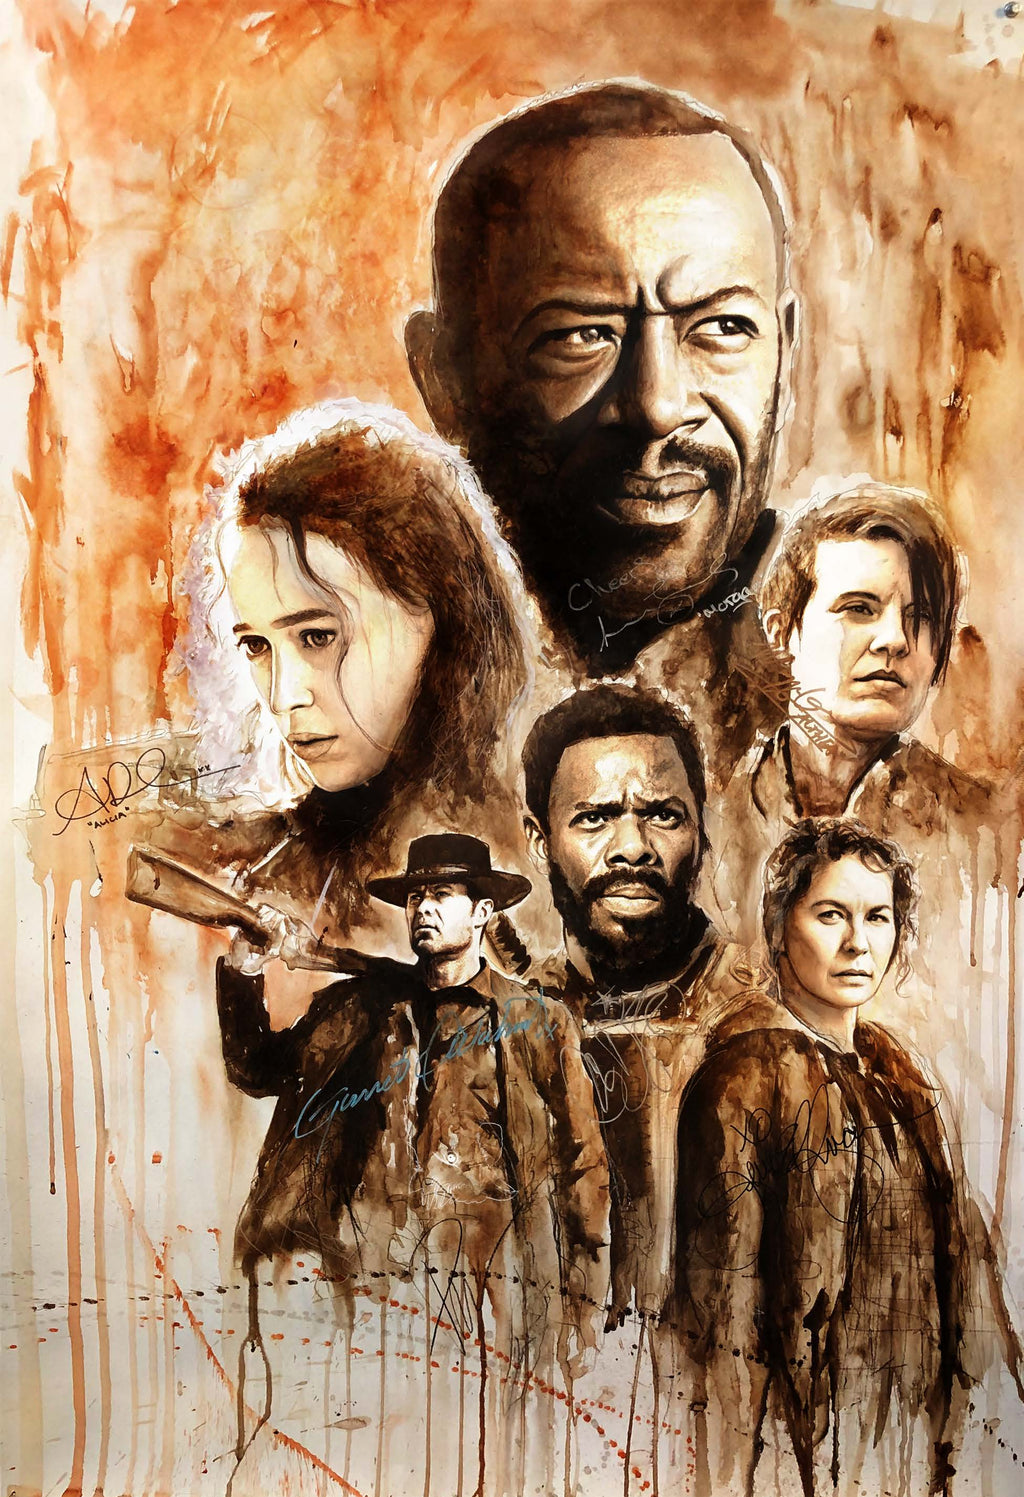 Fear the Walking Dead 13x19 Print